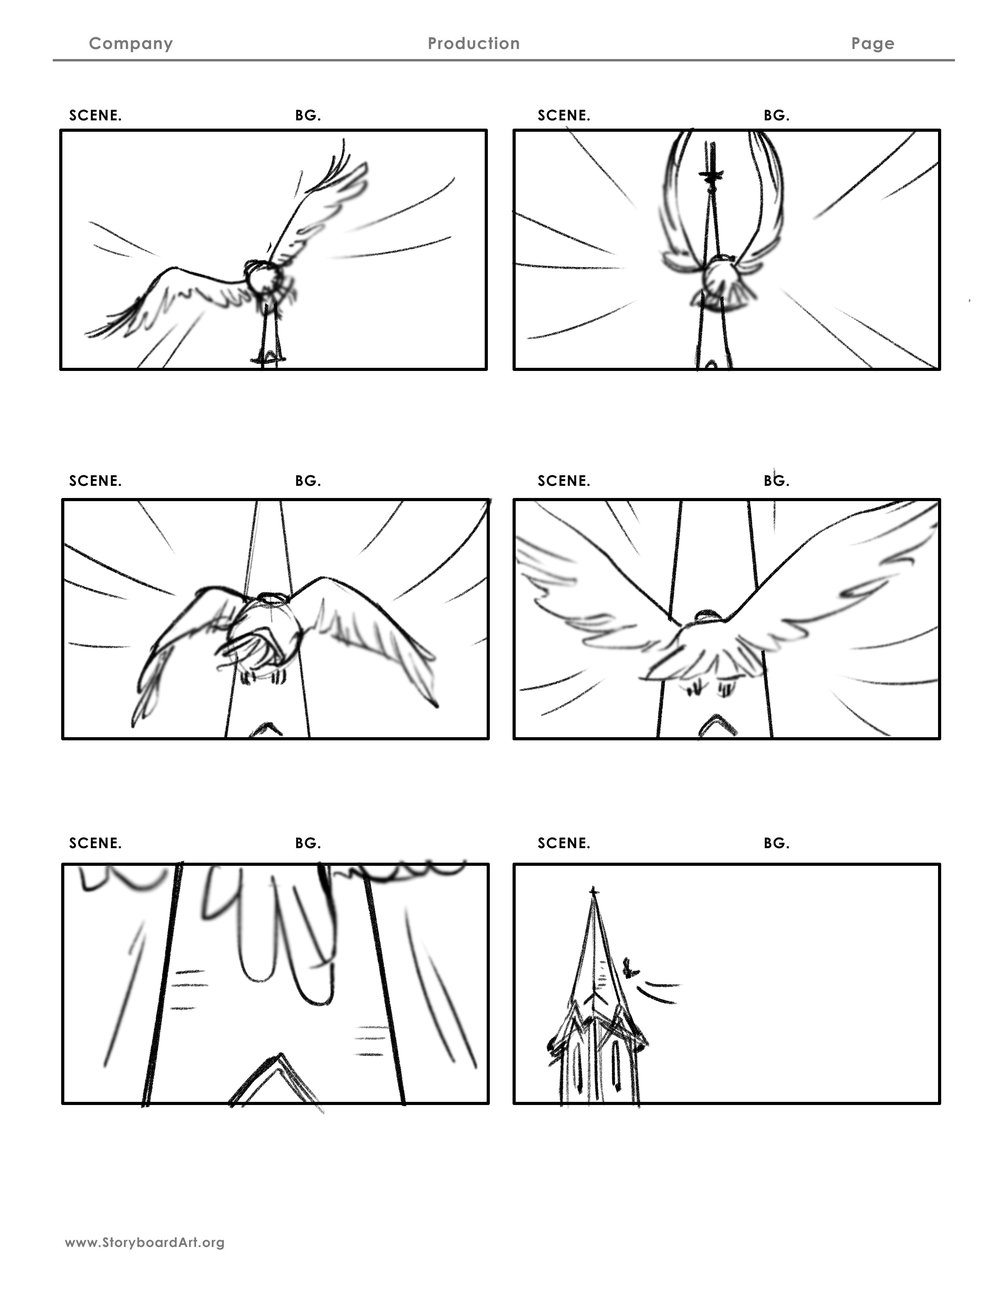 james storyboards page 13.jpg